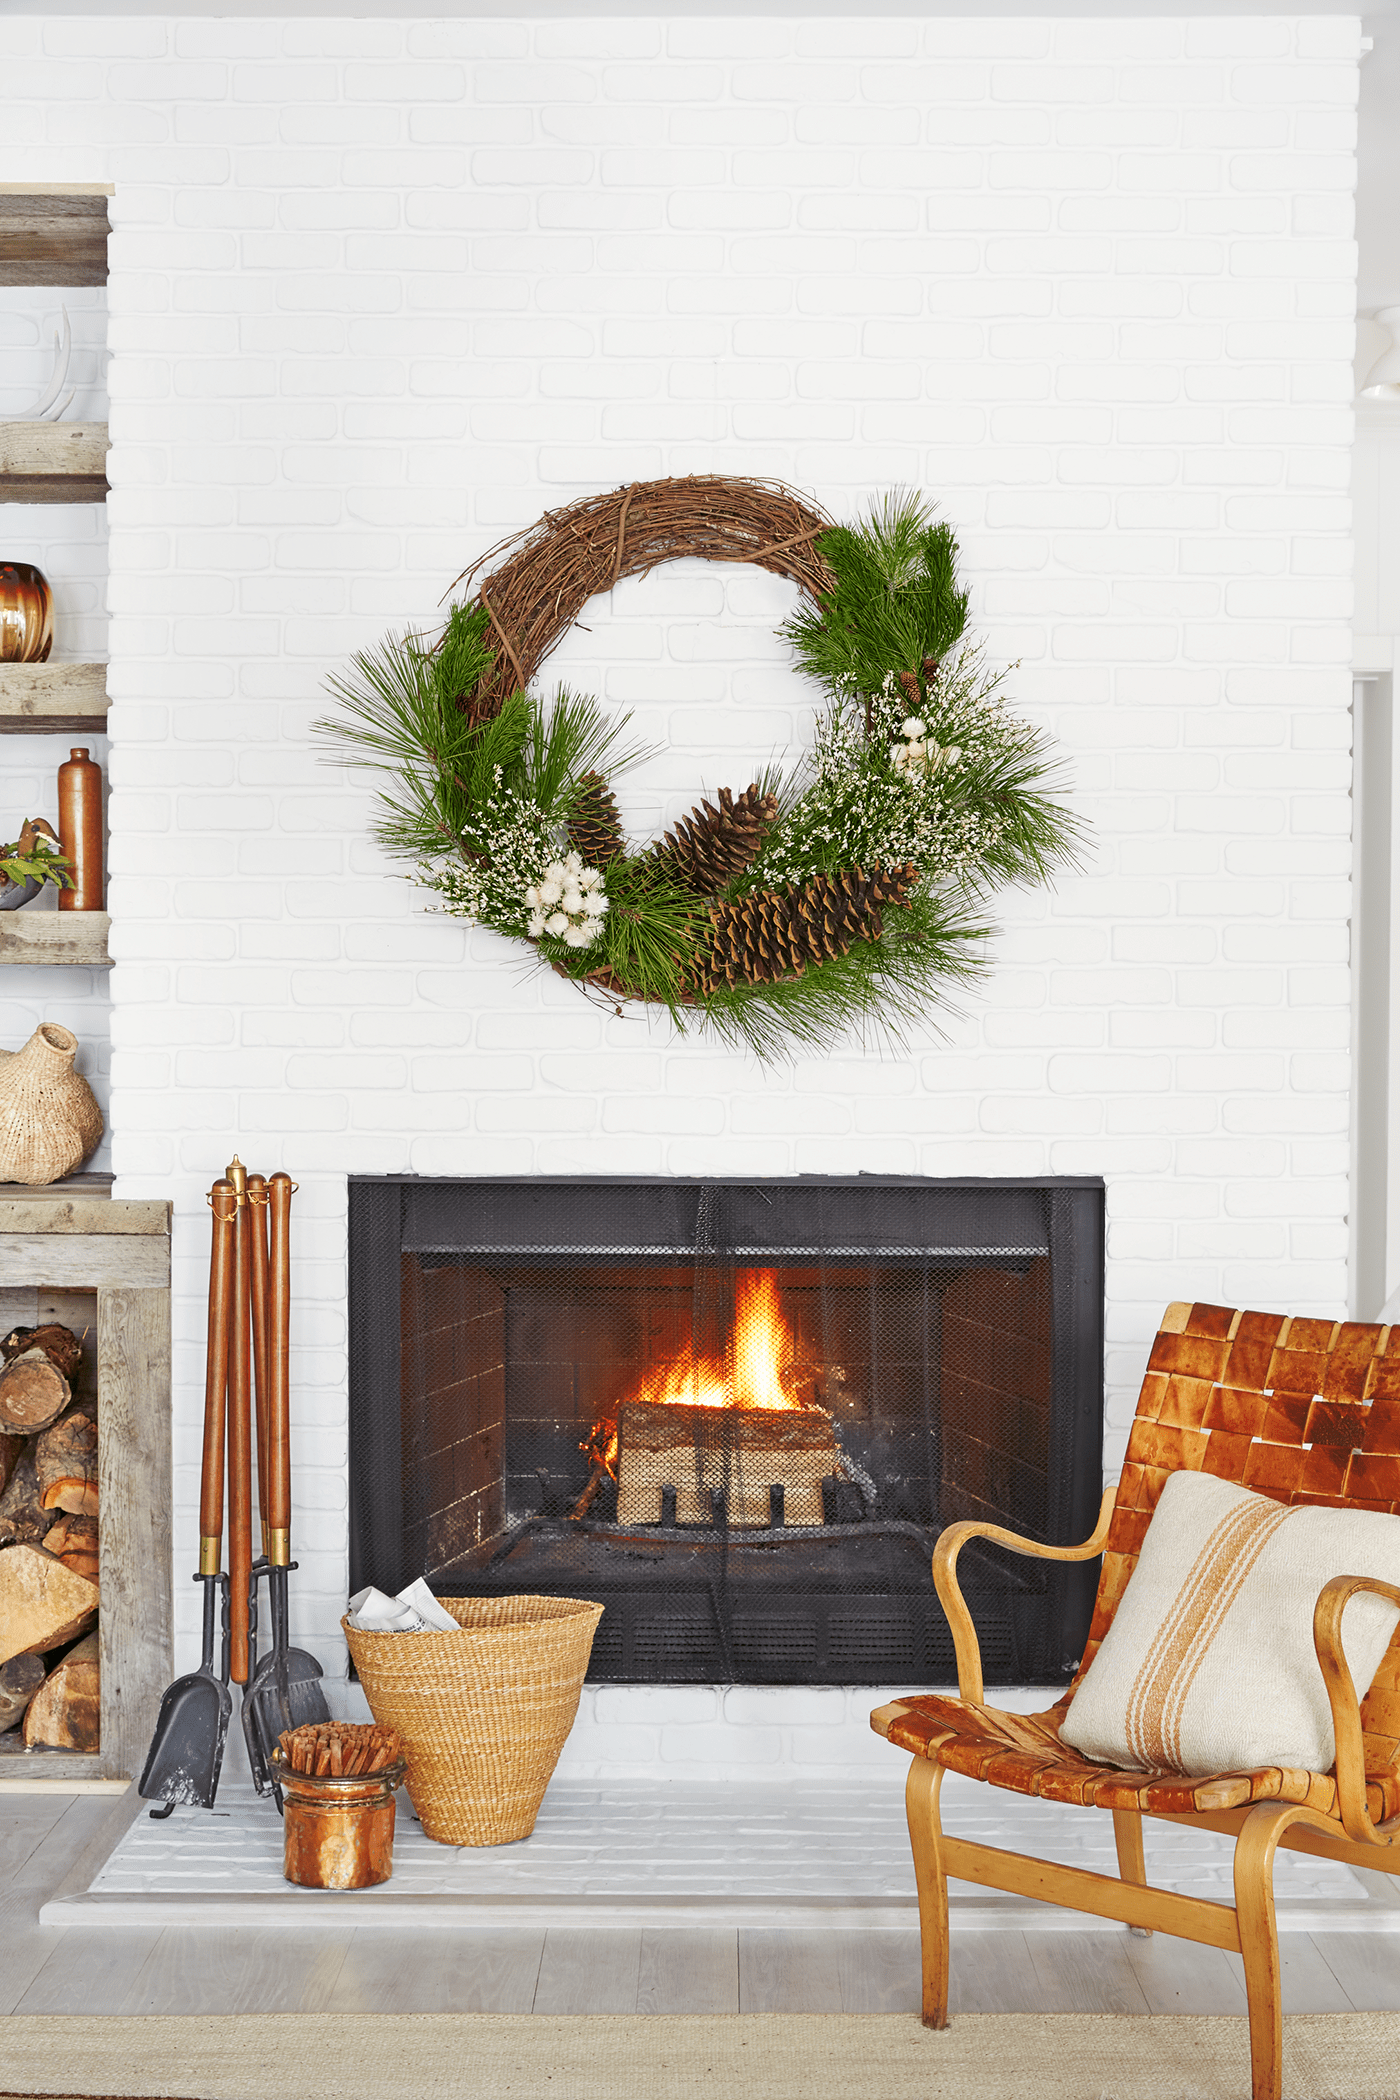 31 Winter Decorating Ideas How To Decorate Your Home For